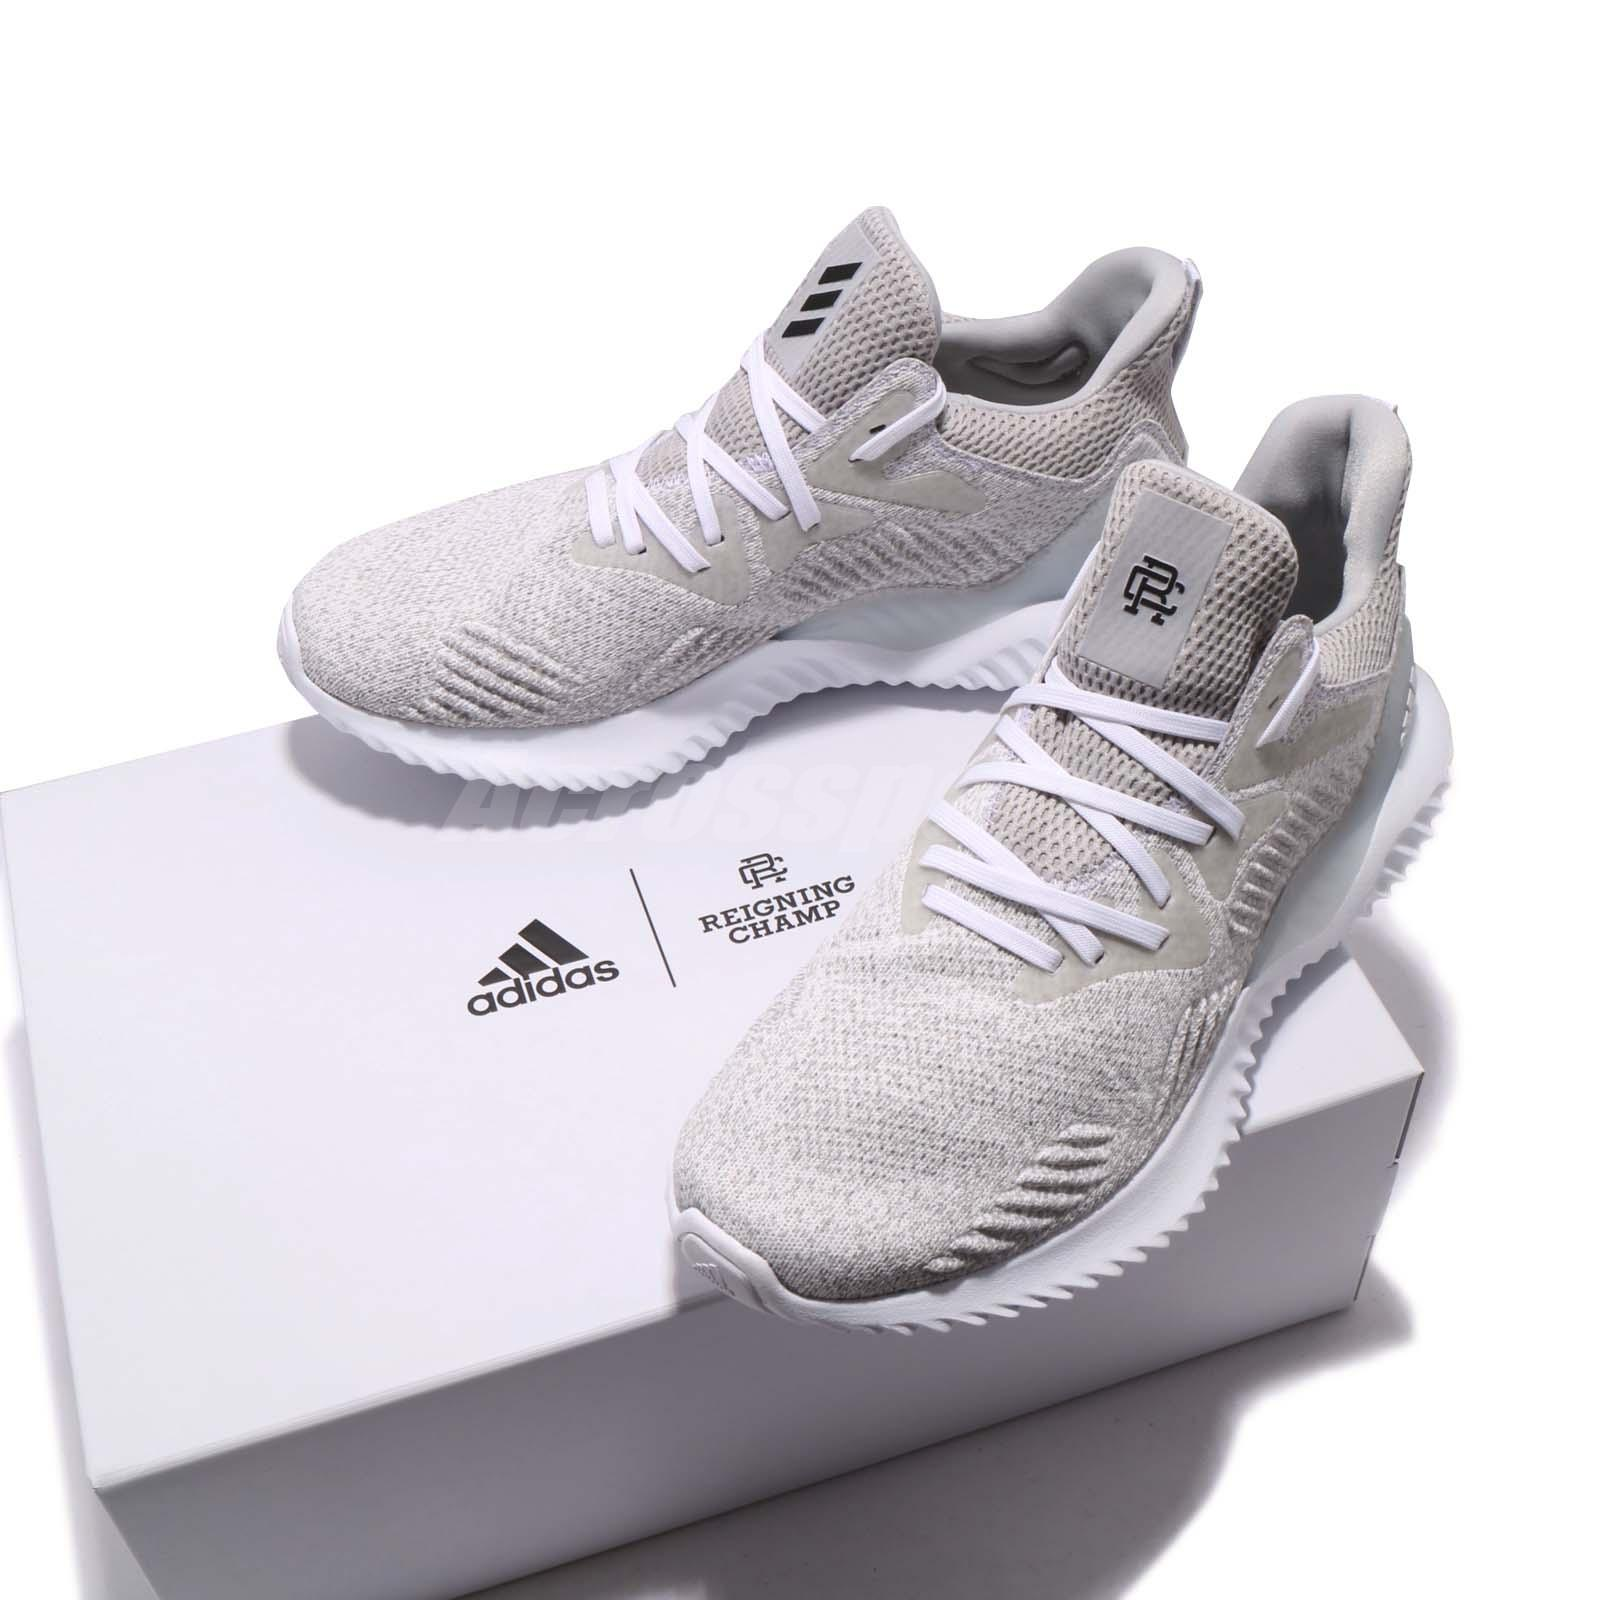 453b76683 ... Reigning Champ x adidas AlphaBOUNCE Beyond White Grey Men Running .